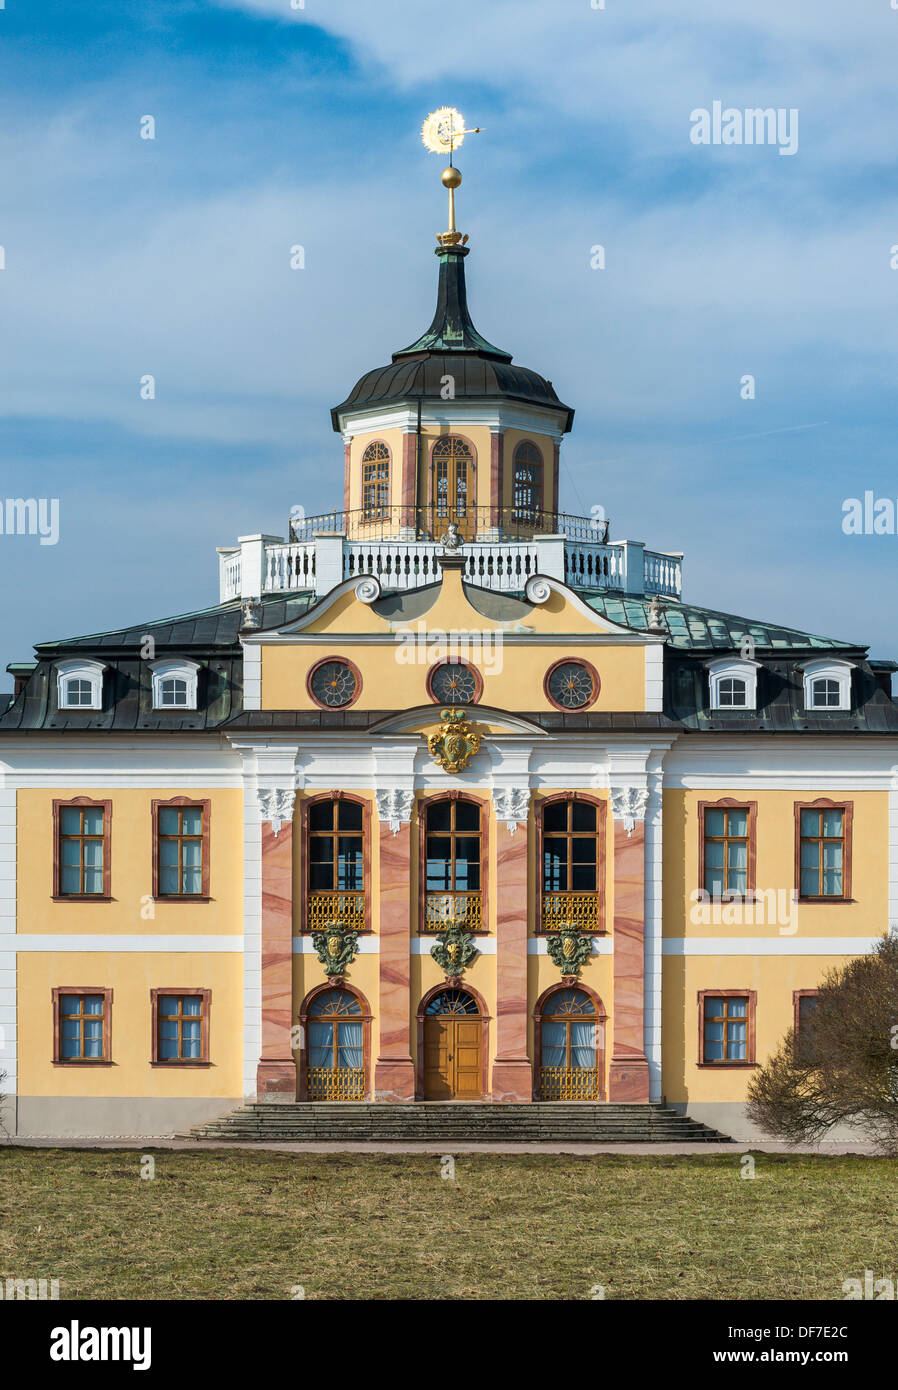 Schloss Belvedere Palace, UNESCO World Cultural Heritage Site, midsection, Weimar, Thuringia, Germany - Stock Image